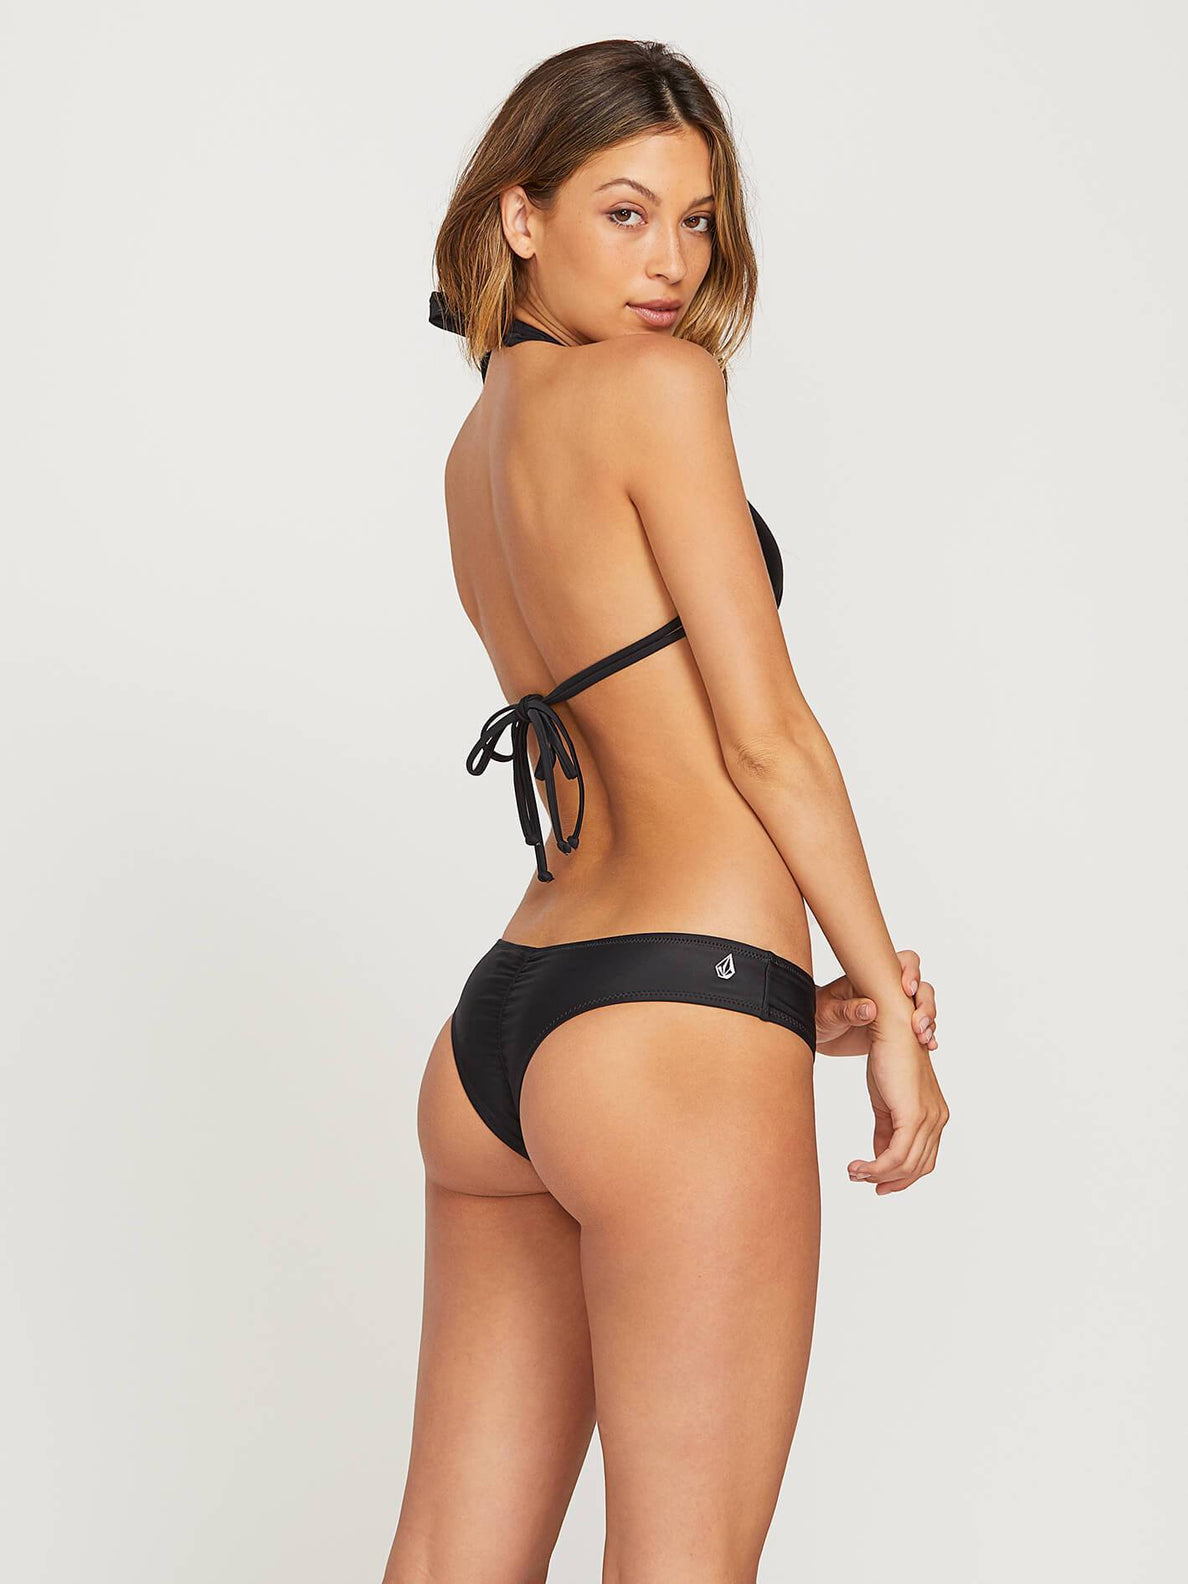 Simply Solid Cheeky Bottoms In Black, Second Alternate View